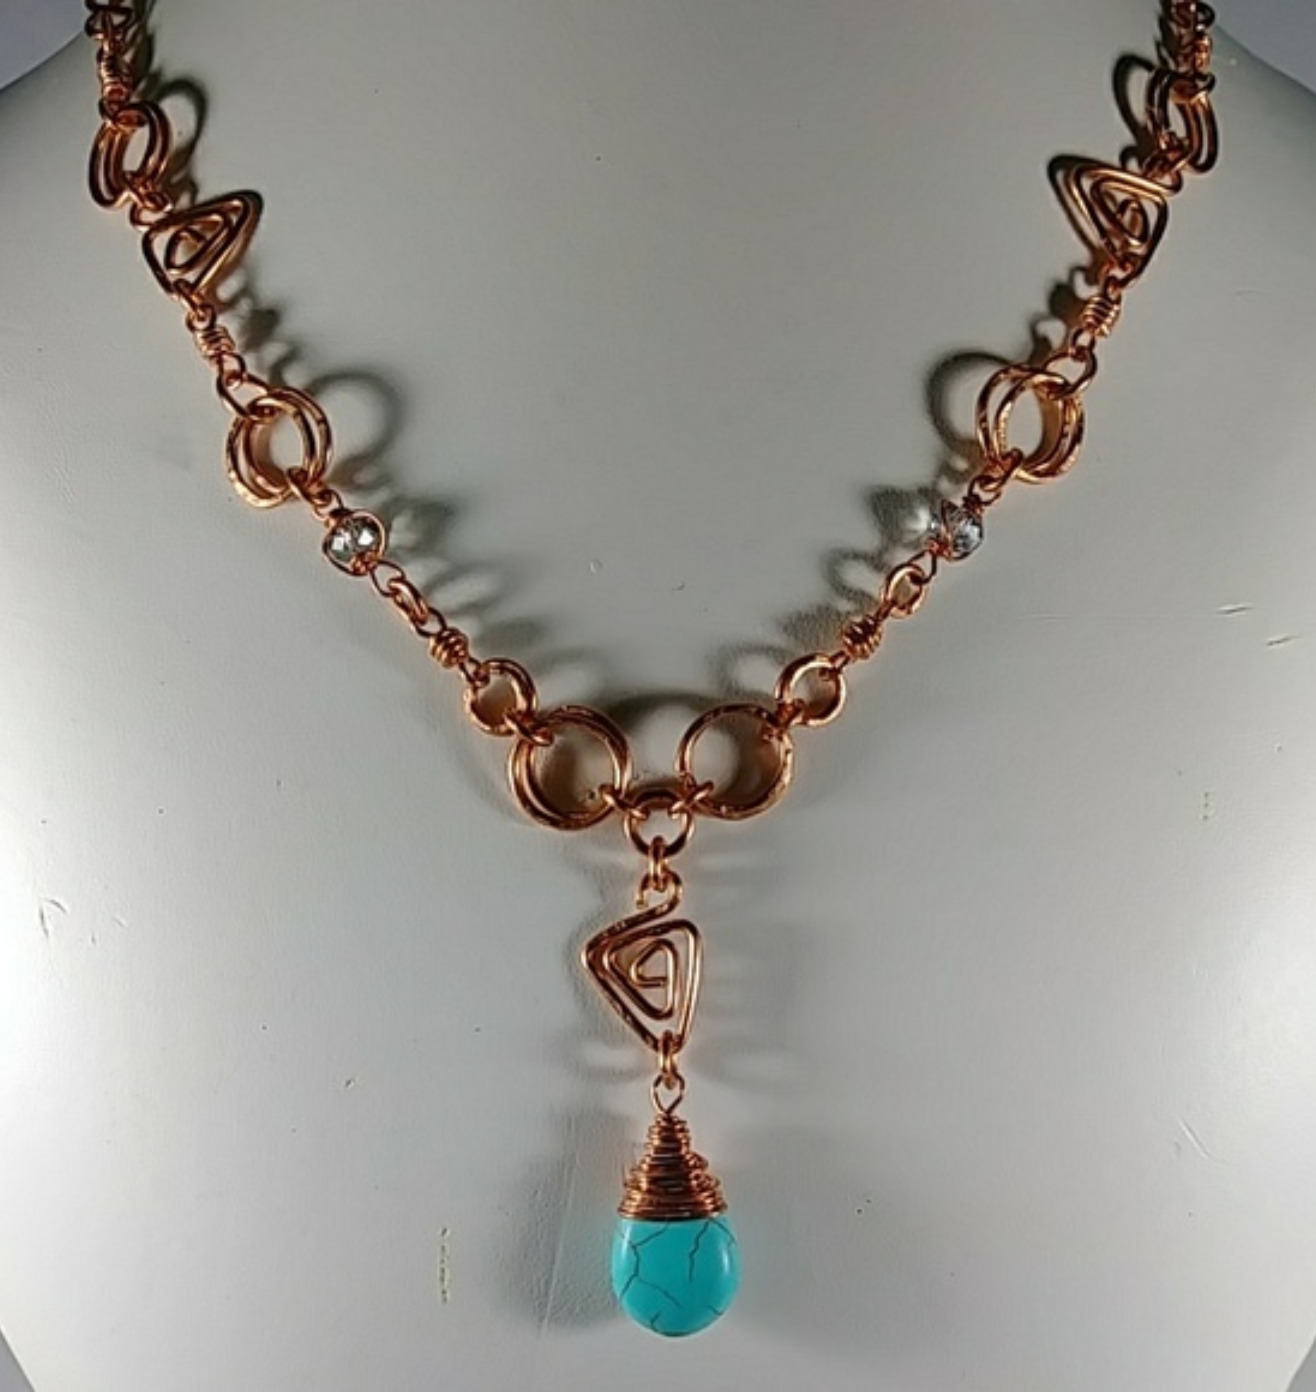 (305-NCK) - Description: Copper Wire, Beads, Turquoise Howlite (Gemstones) , Faceted Glass Beads, Hook Closure - Dimension: 24 Inches (L)